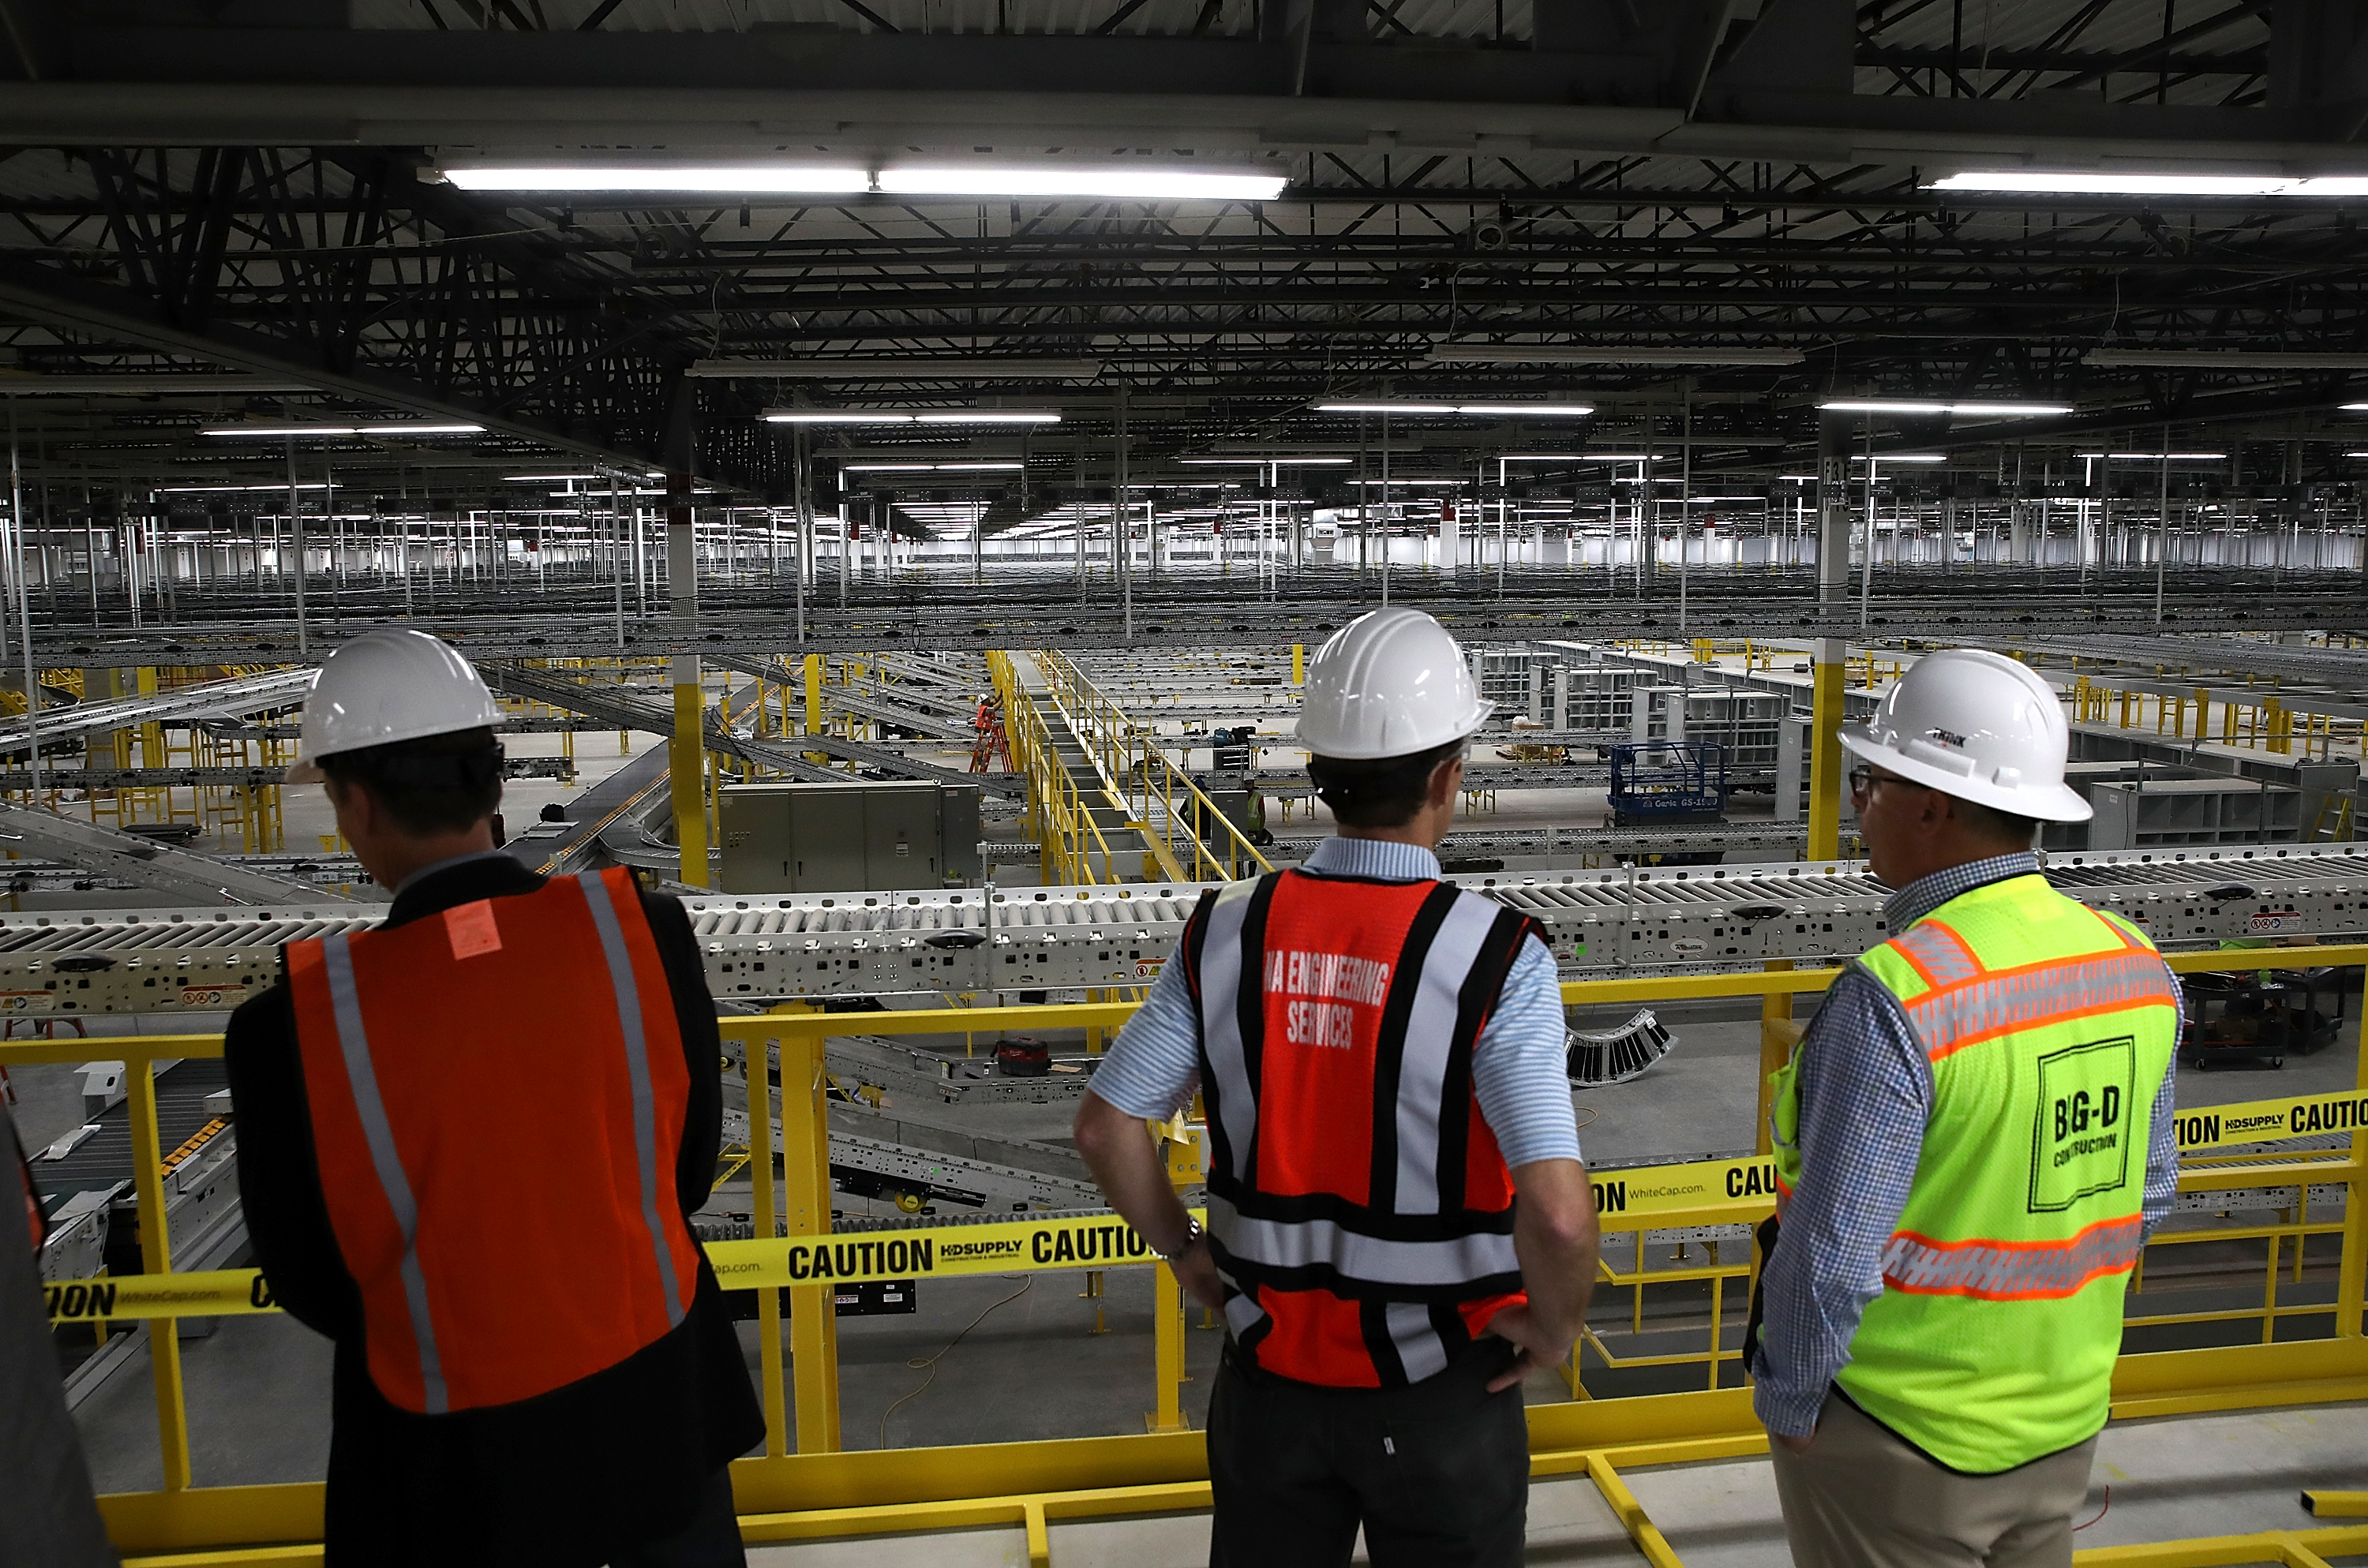 Workers in hardhats and neon vests view a conveyor belt system that is under construction at a new Amazon fulfillment center in Sacramento.